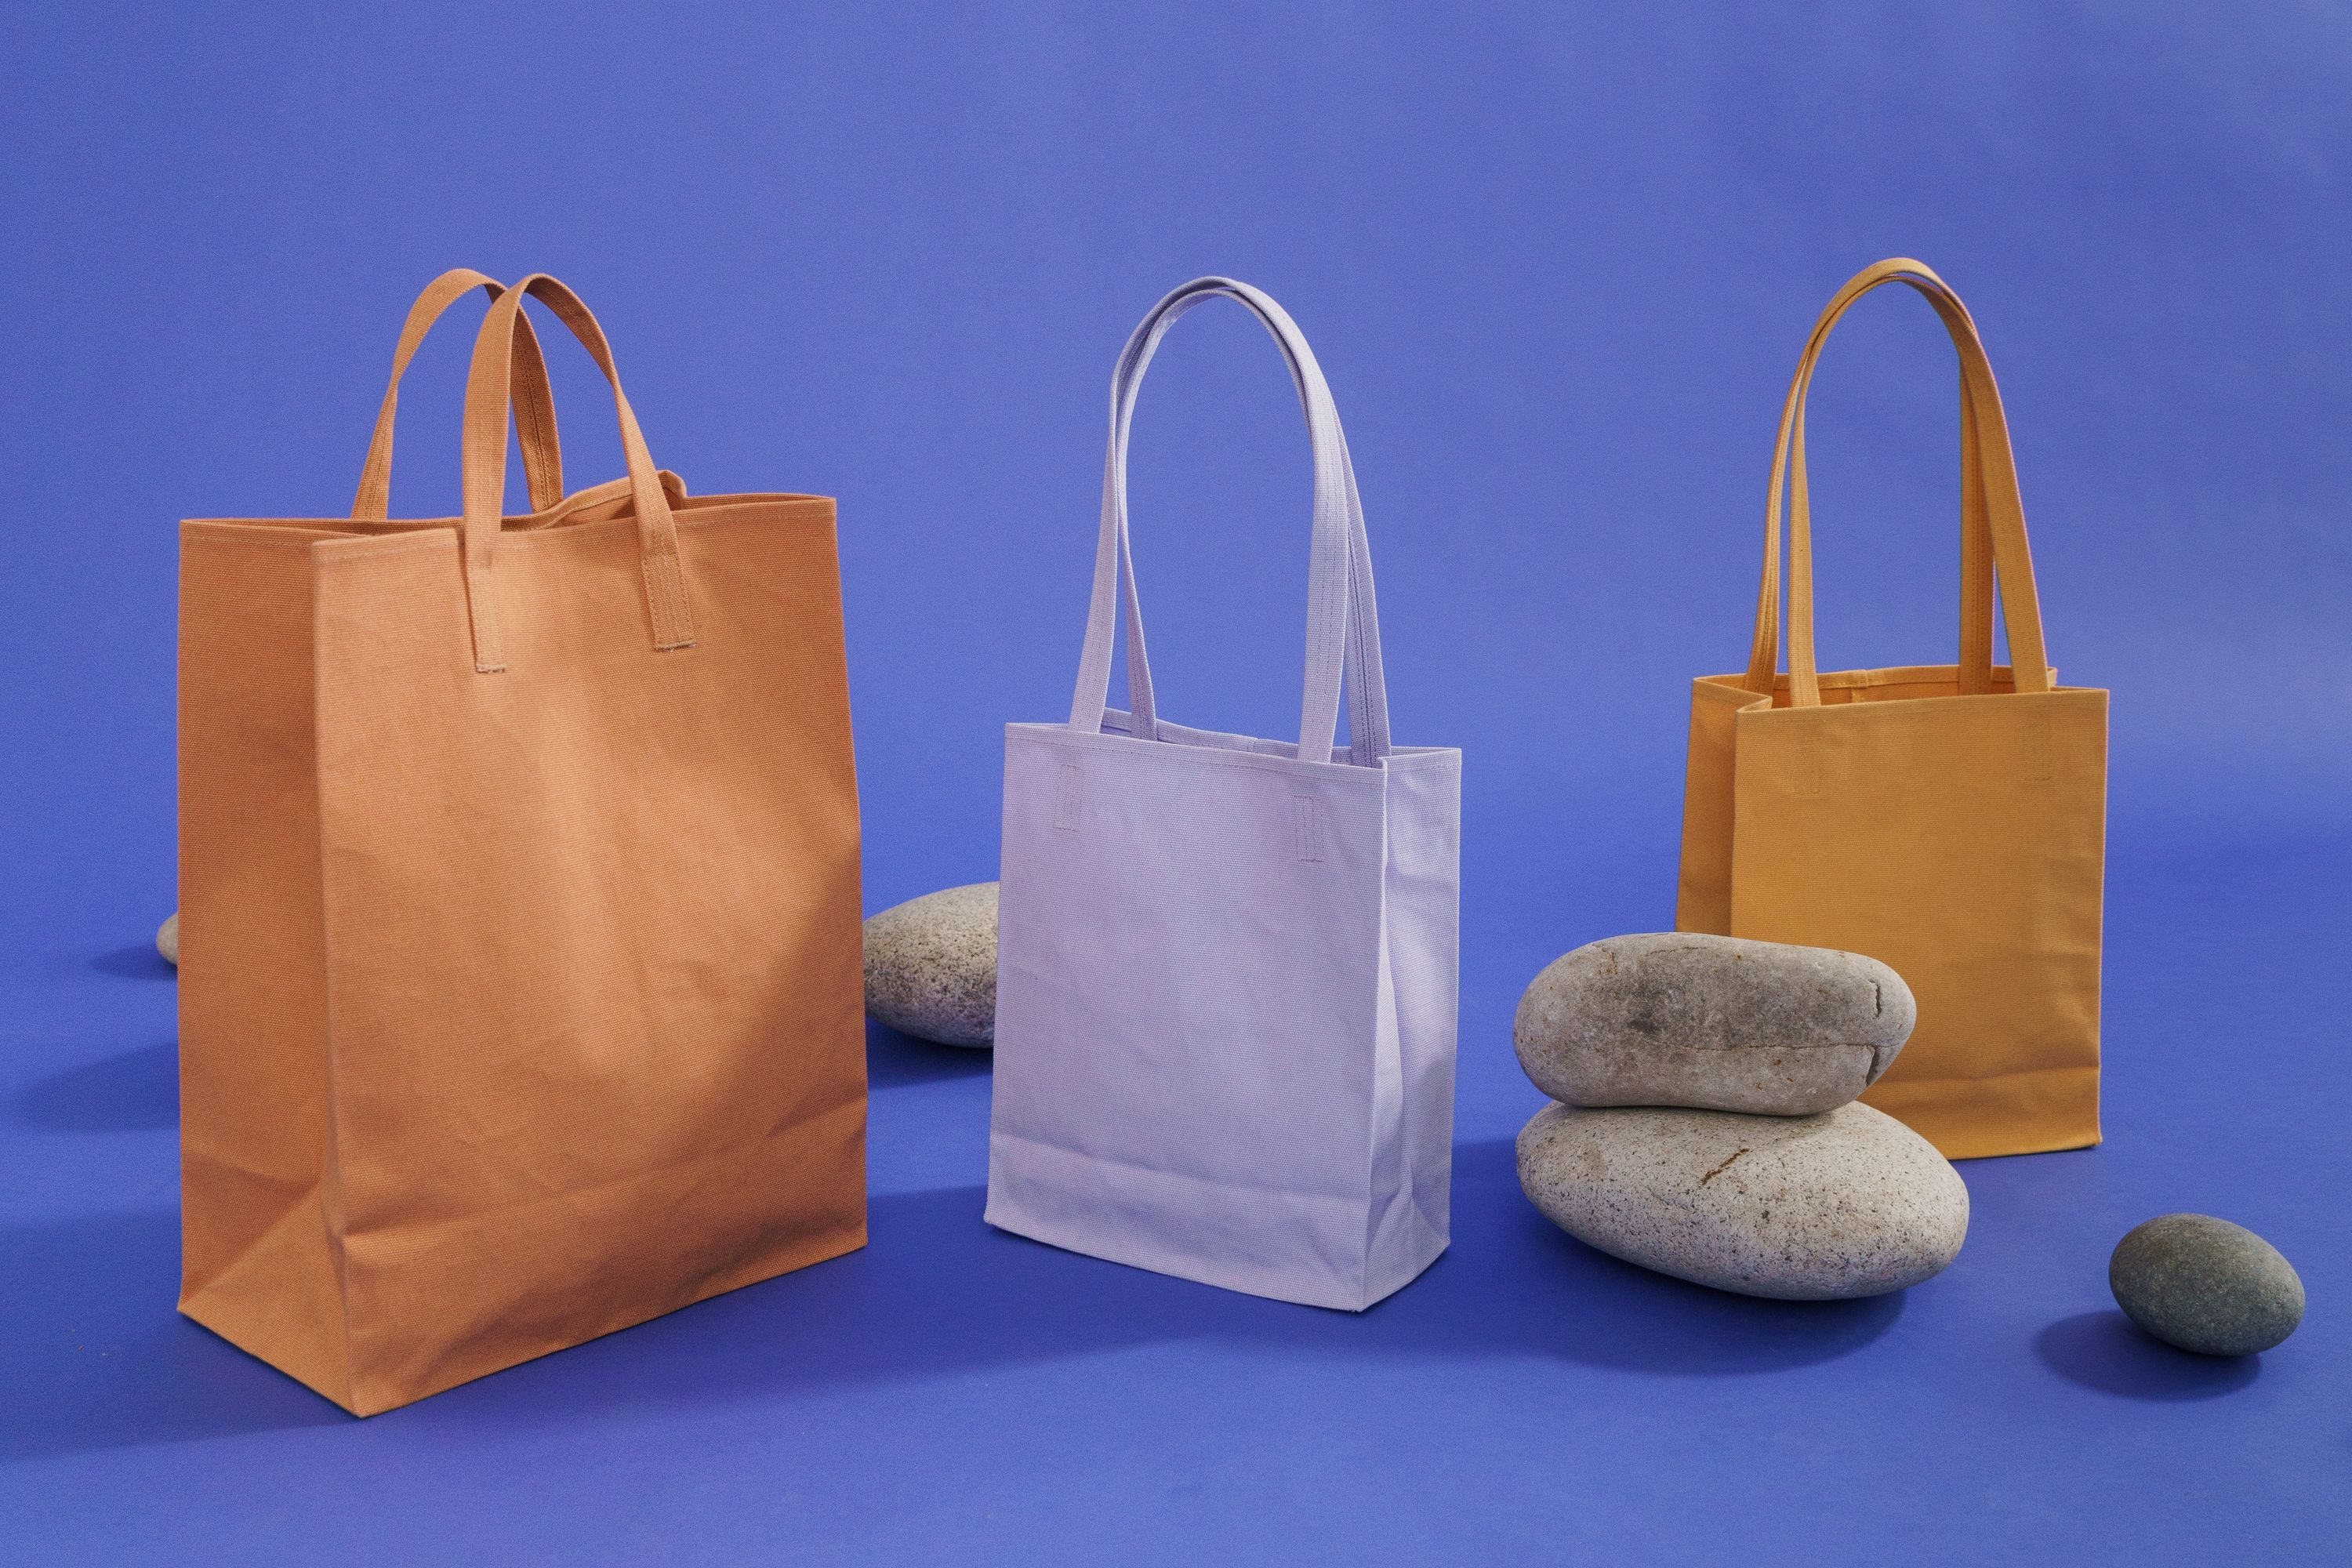 These totes were made for shopping.